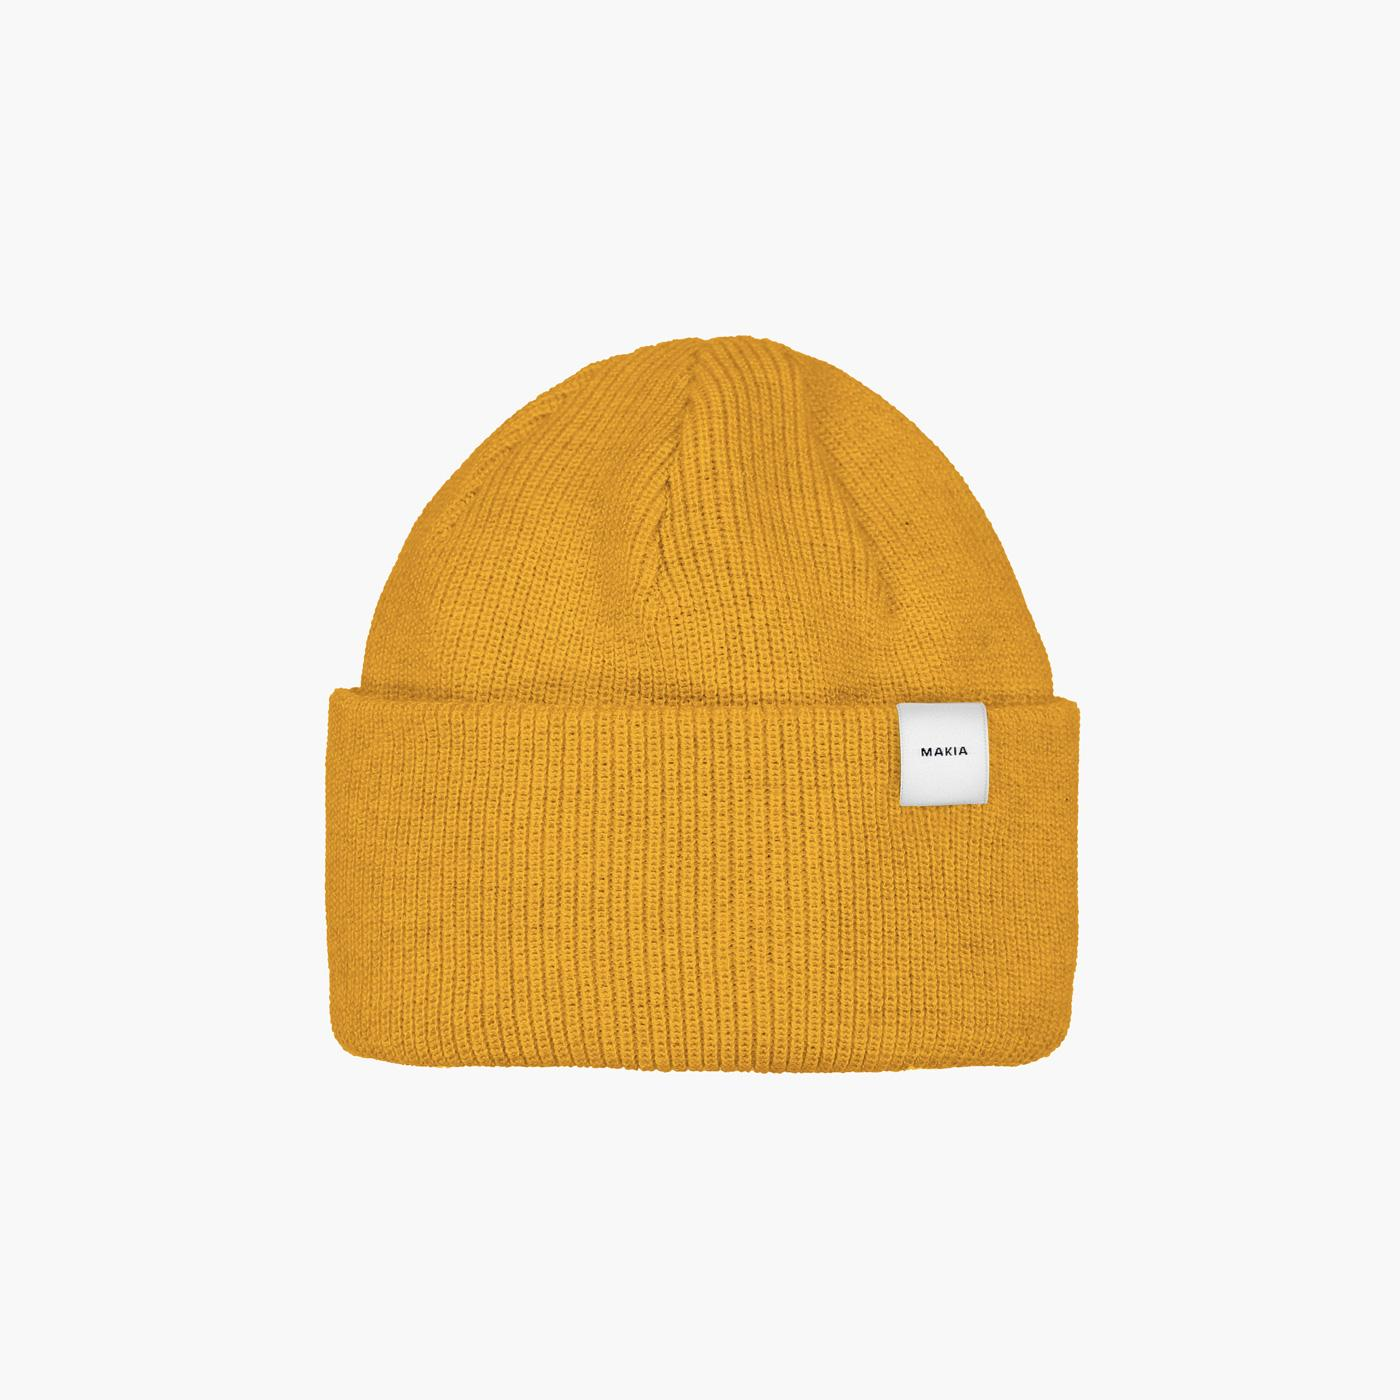 Makia // Merino Thin cap - Yellow